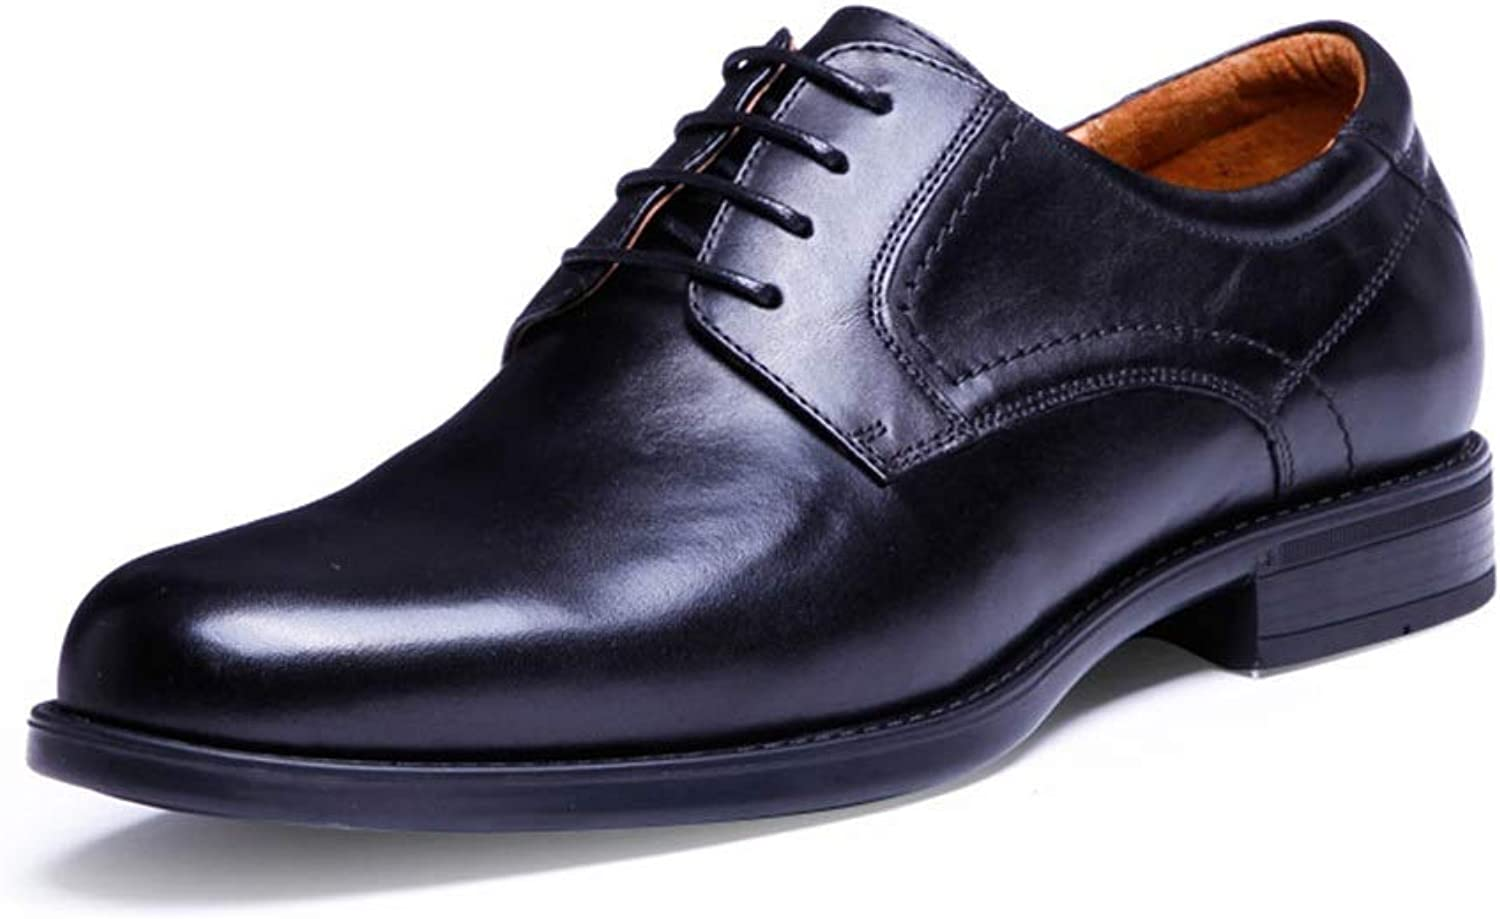 Men's Toe Layer Leather Wedding shoes with Breathable British Pointed Men's shoes Leather Men's shoes (color   Black, Size   41)